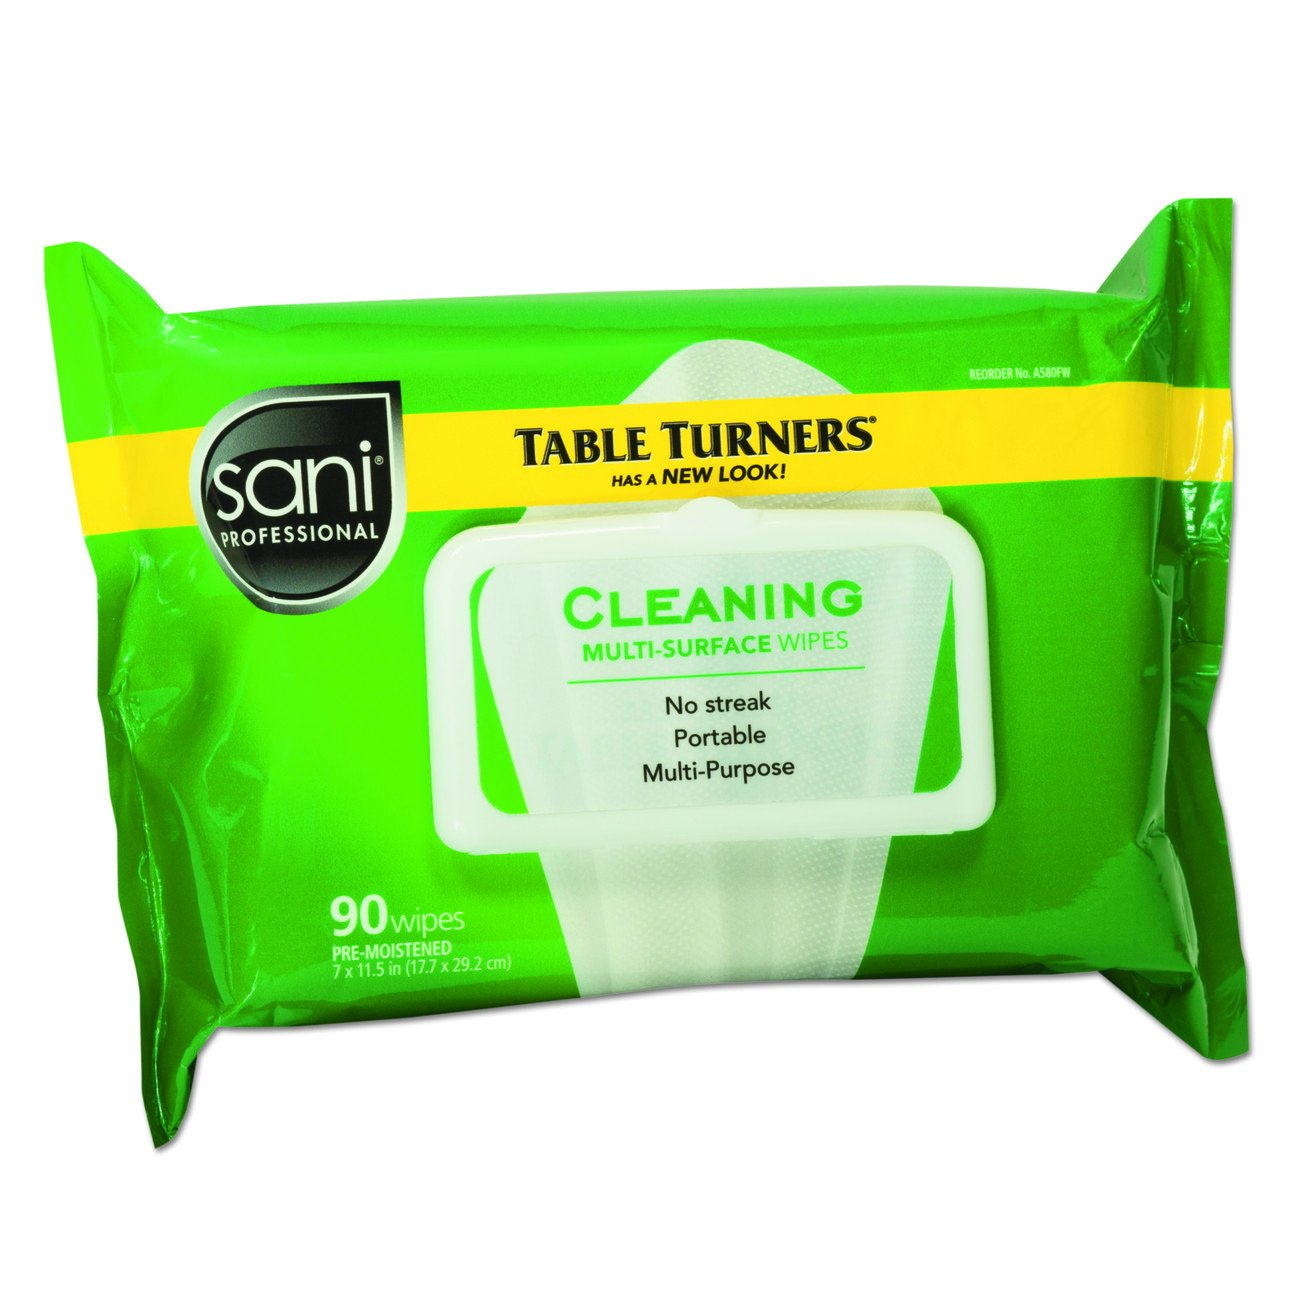 Sani Professional NIC A580FW Table Turner Wet Wipe, 11-1/2 Width, 7' Length, Paper, White, Pack of 1080, 11' Height, 8.25' Width, Paper, (Pack of 1080) 7 Length 11 Height 8.25 Width